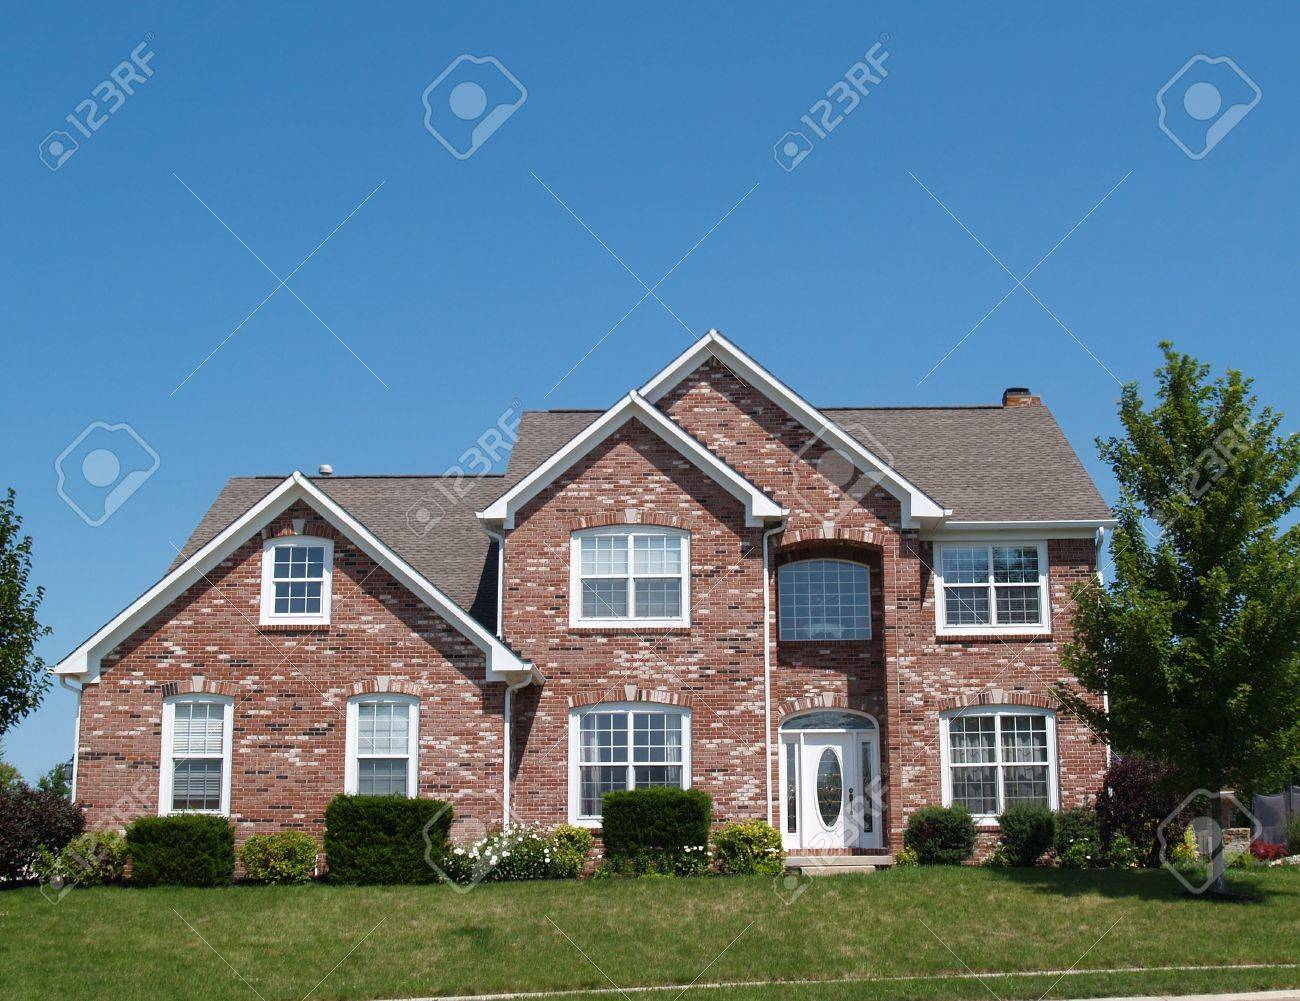 Two story new brick residential home with side garage and plenty of copy space. Stock Photo - 6448196